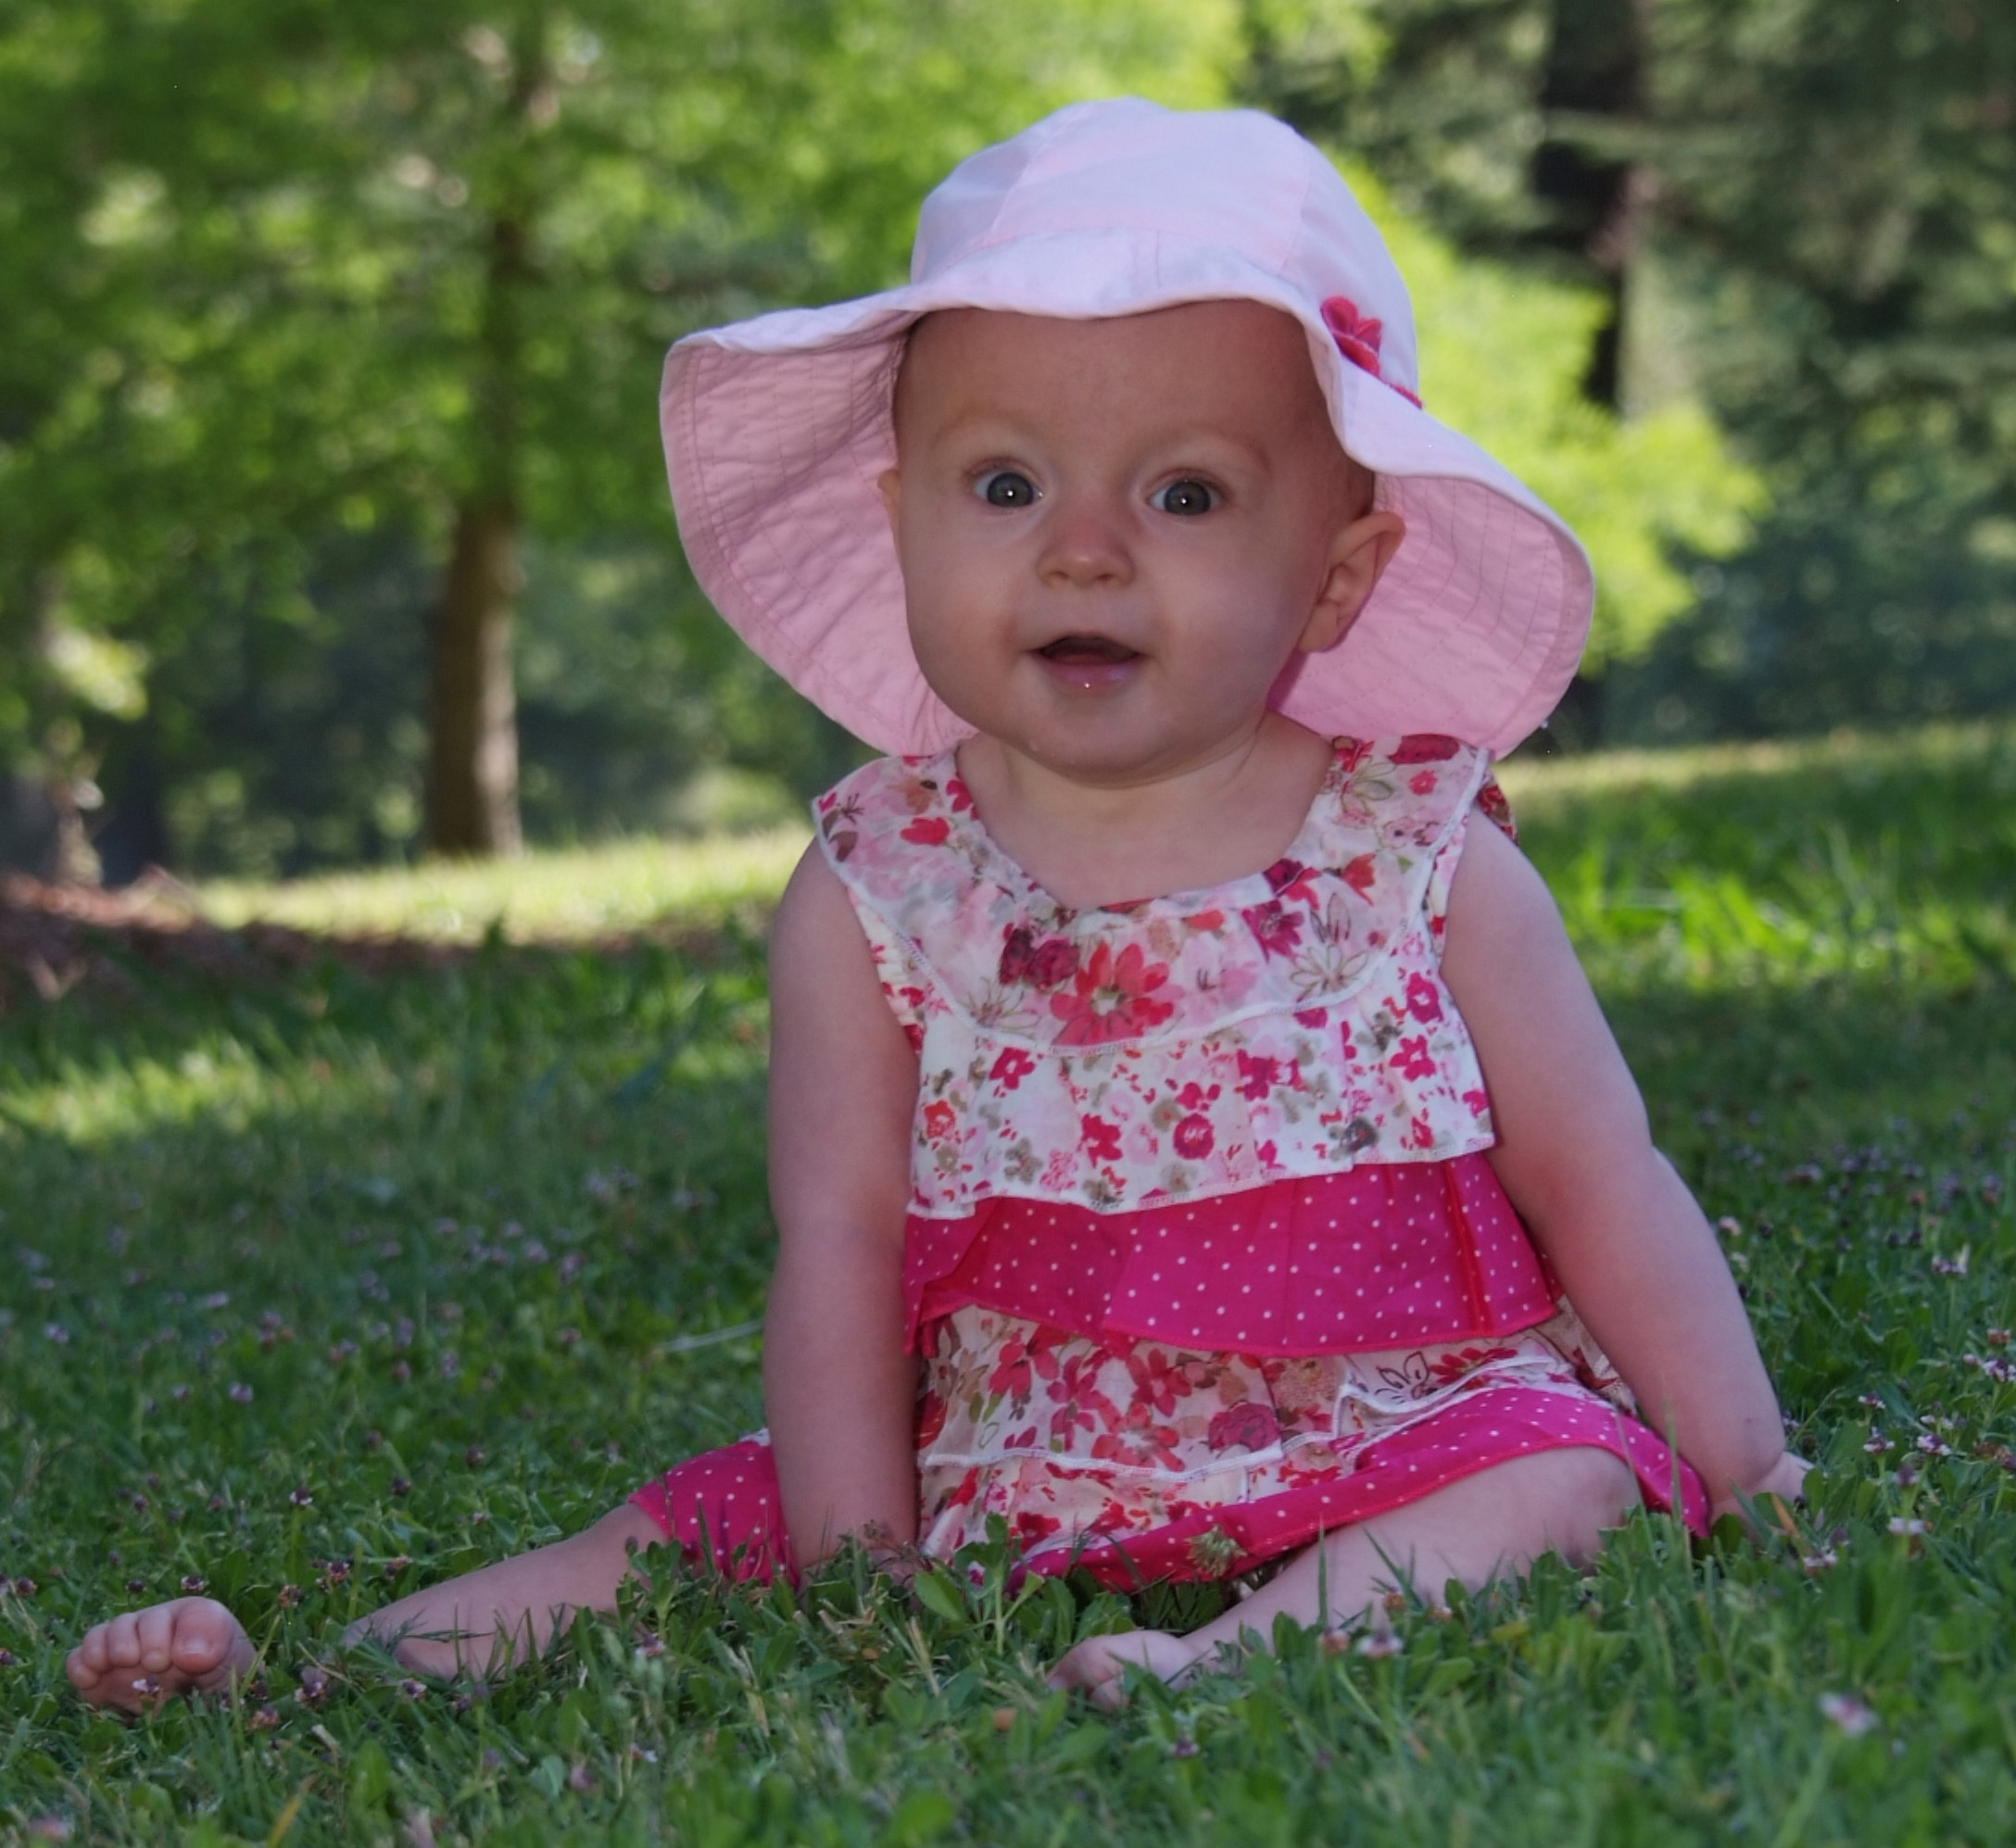 Baby 7 month pink dress